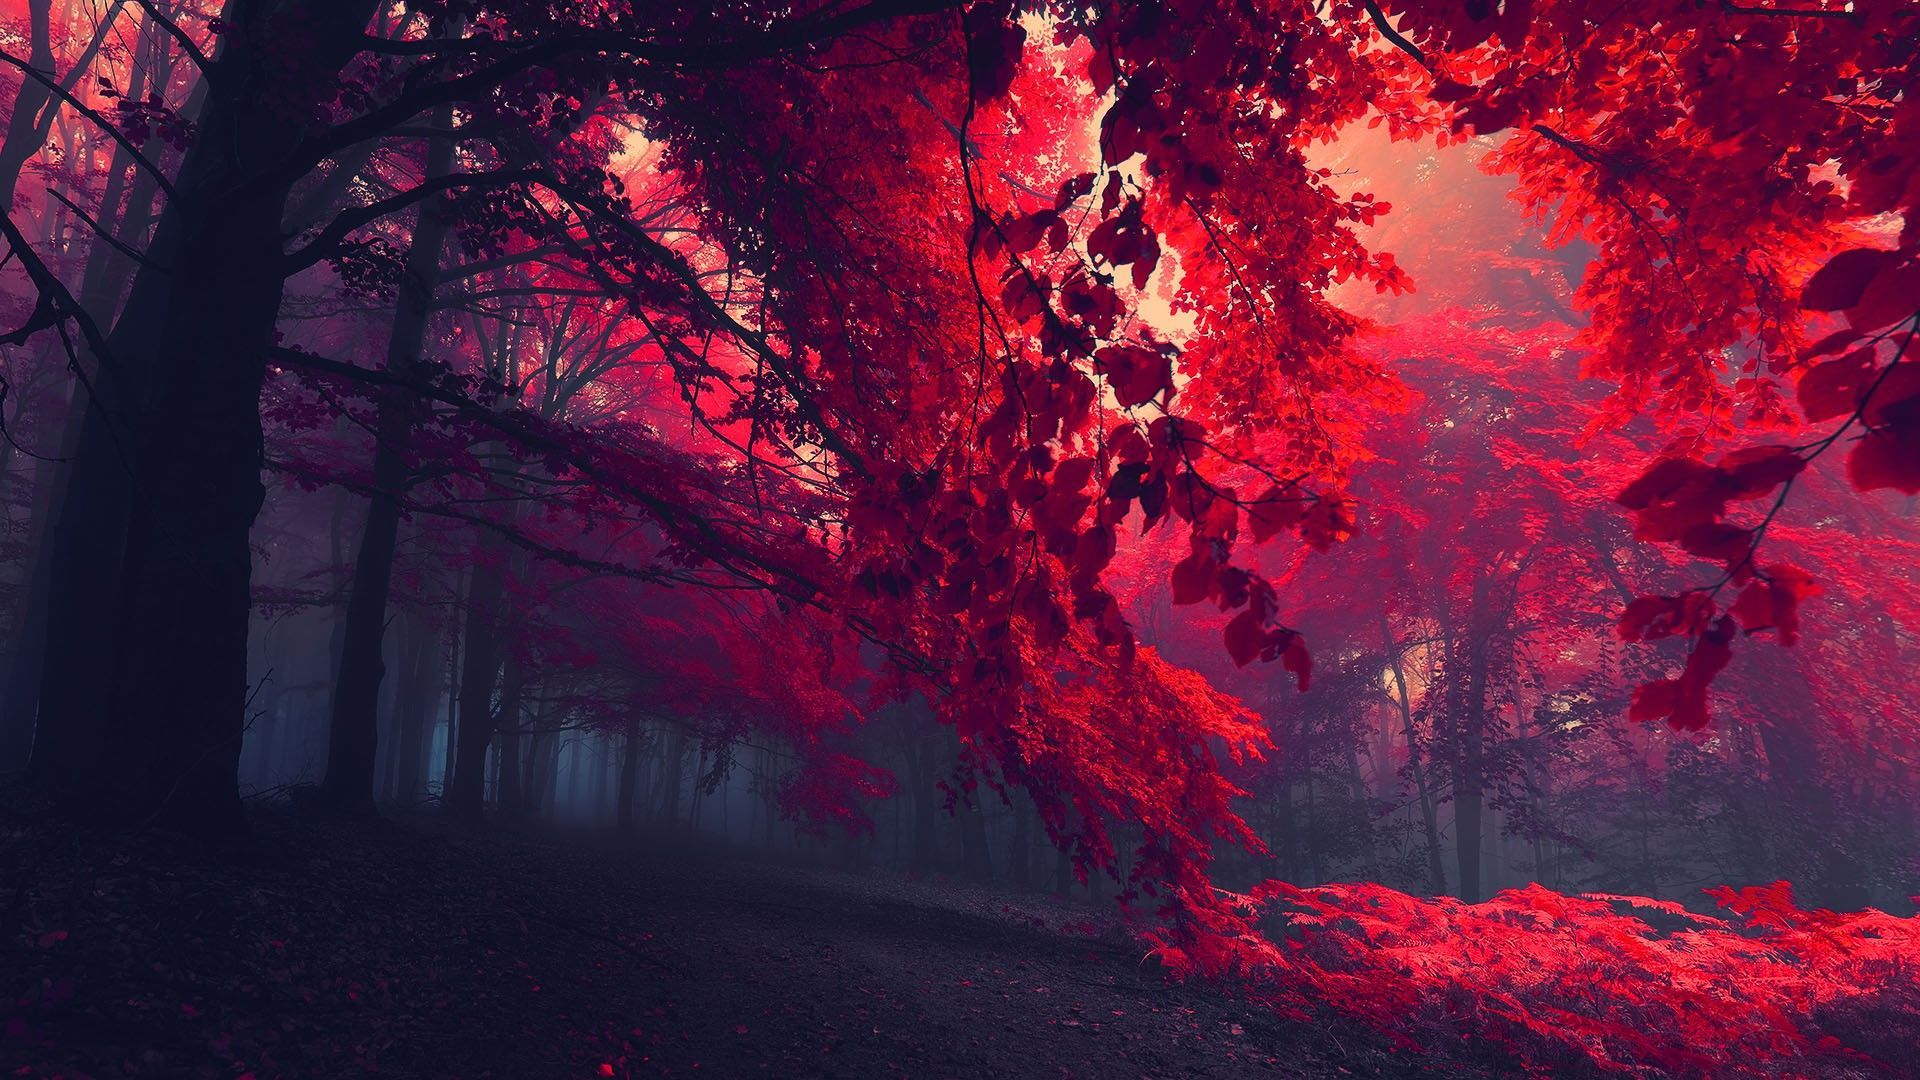 Red Anime Wallpapers Top Free Red Anime Backgrounds Wallpaperaccess Background Hd Wallpaper Tree Hd Wallpaper Desktop Wallpaper Art Anime red wallpaper 1920x1080